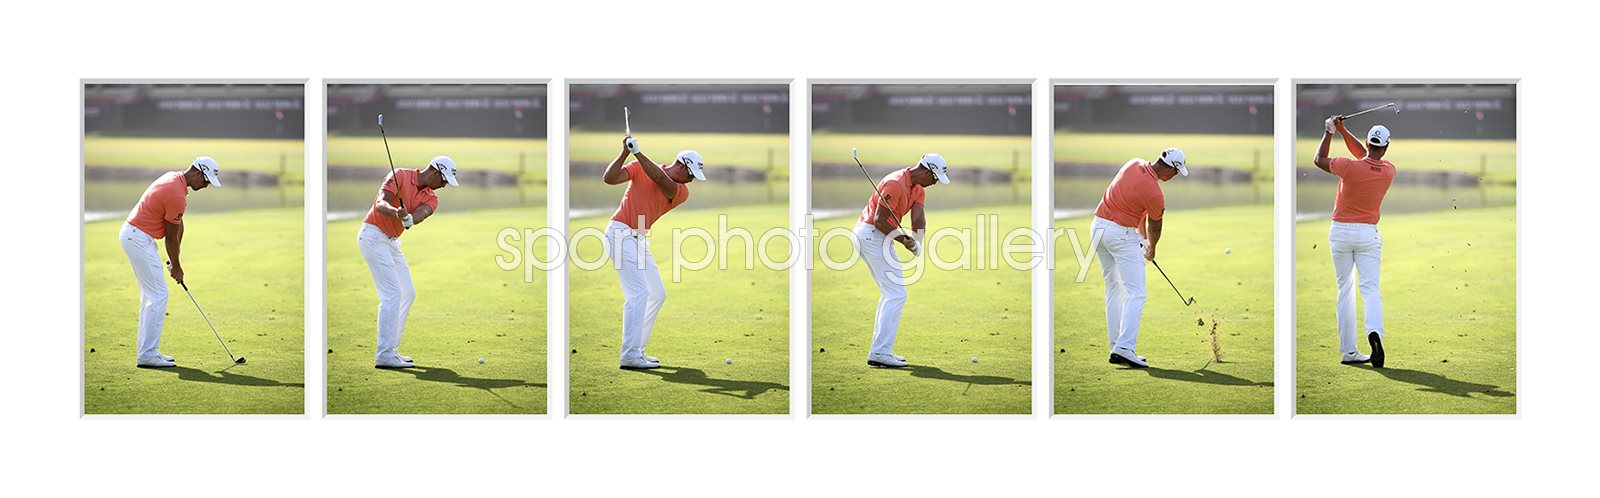 Henrik Stenson 6 Stage Swing Sequence